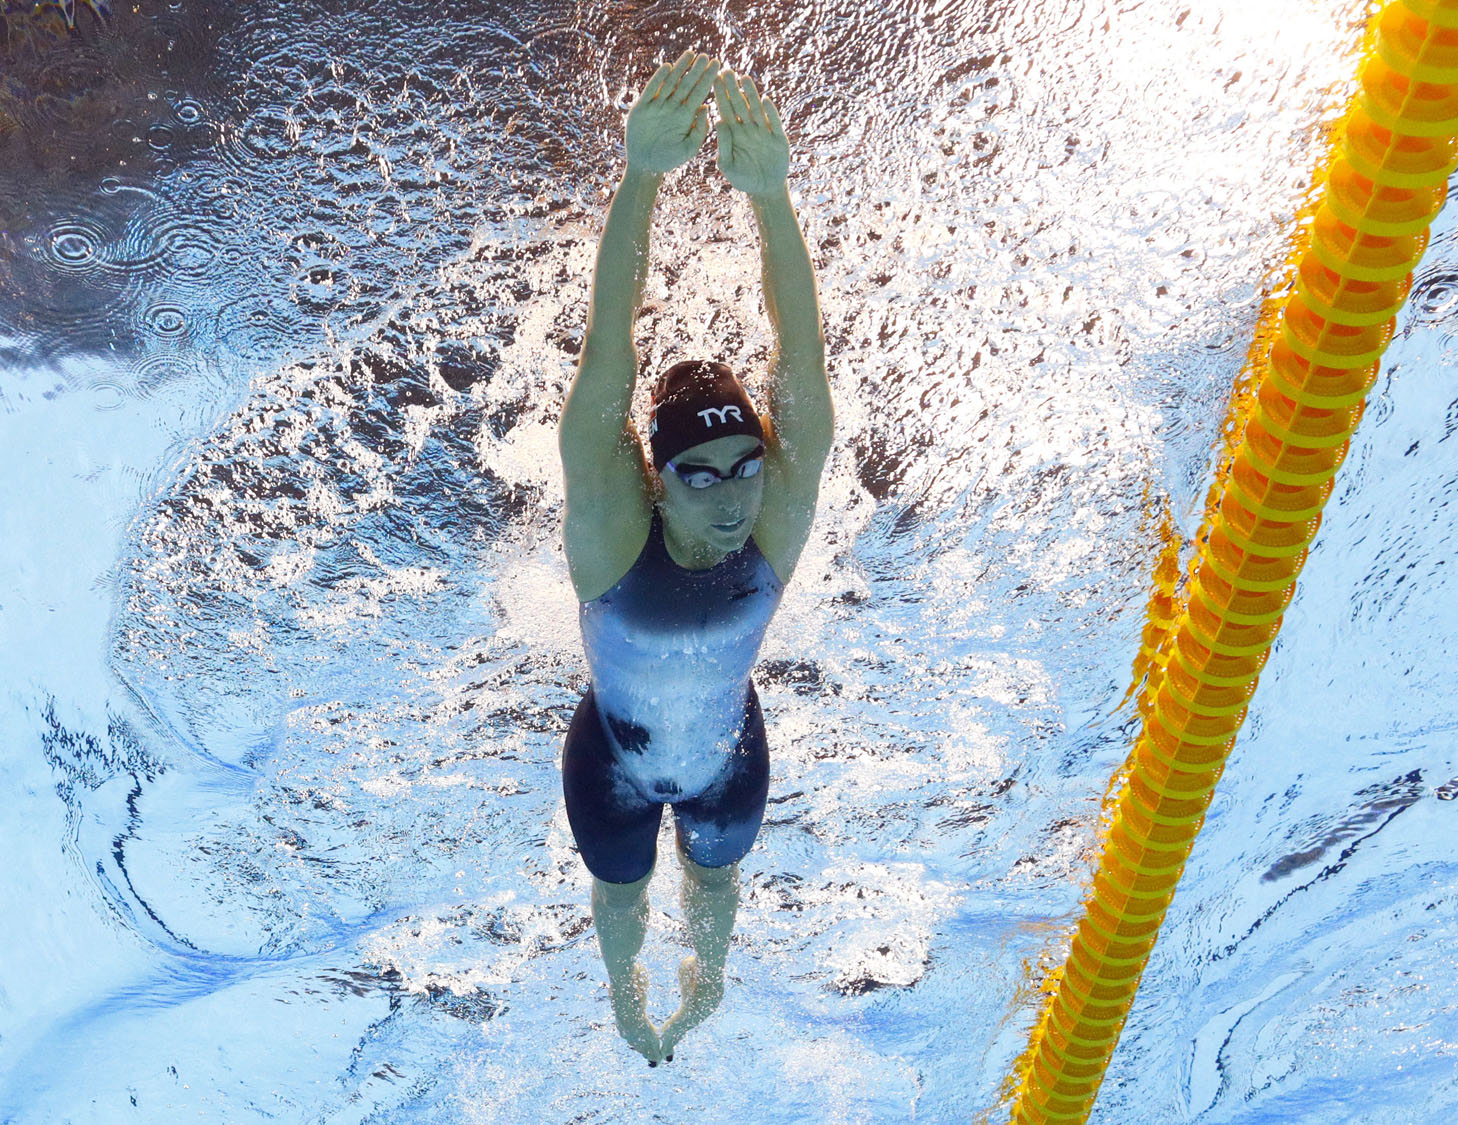 competitive swimming essay Free essays on competitive swimming an ideal sport for kids get help with your writing 1 through 30.